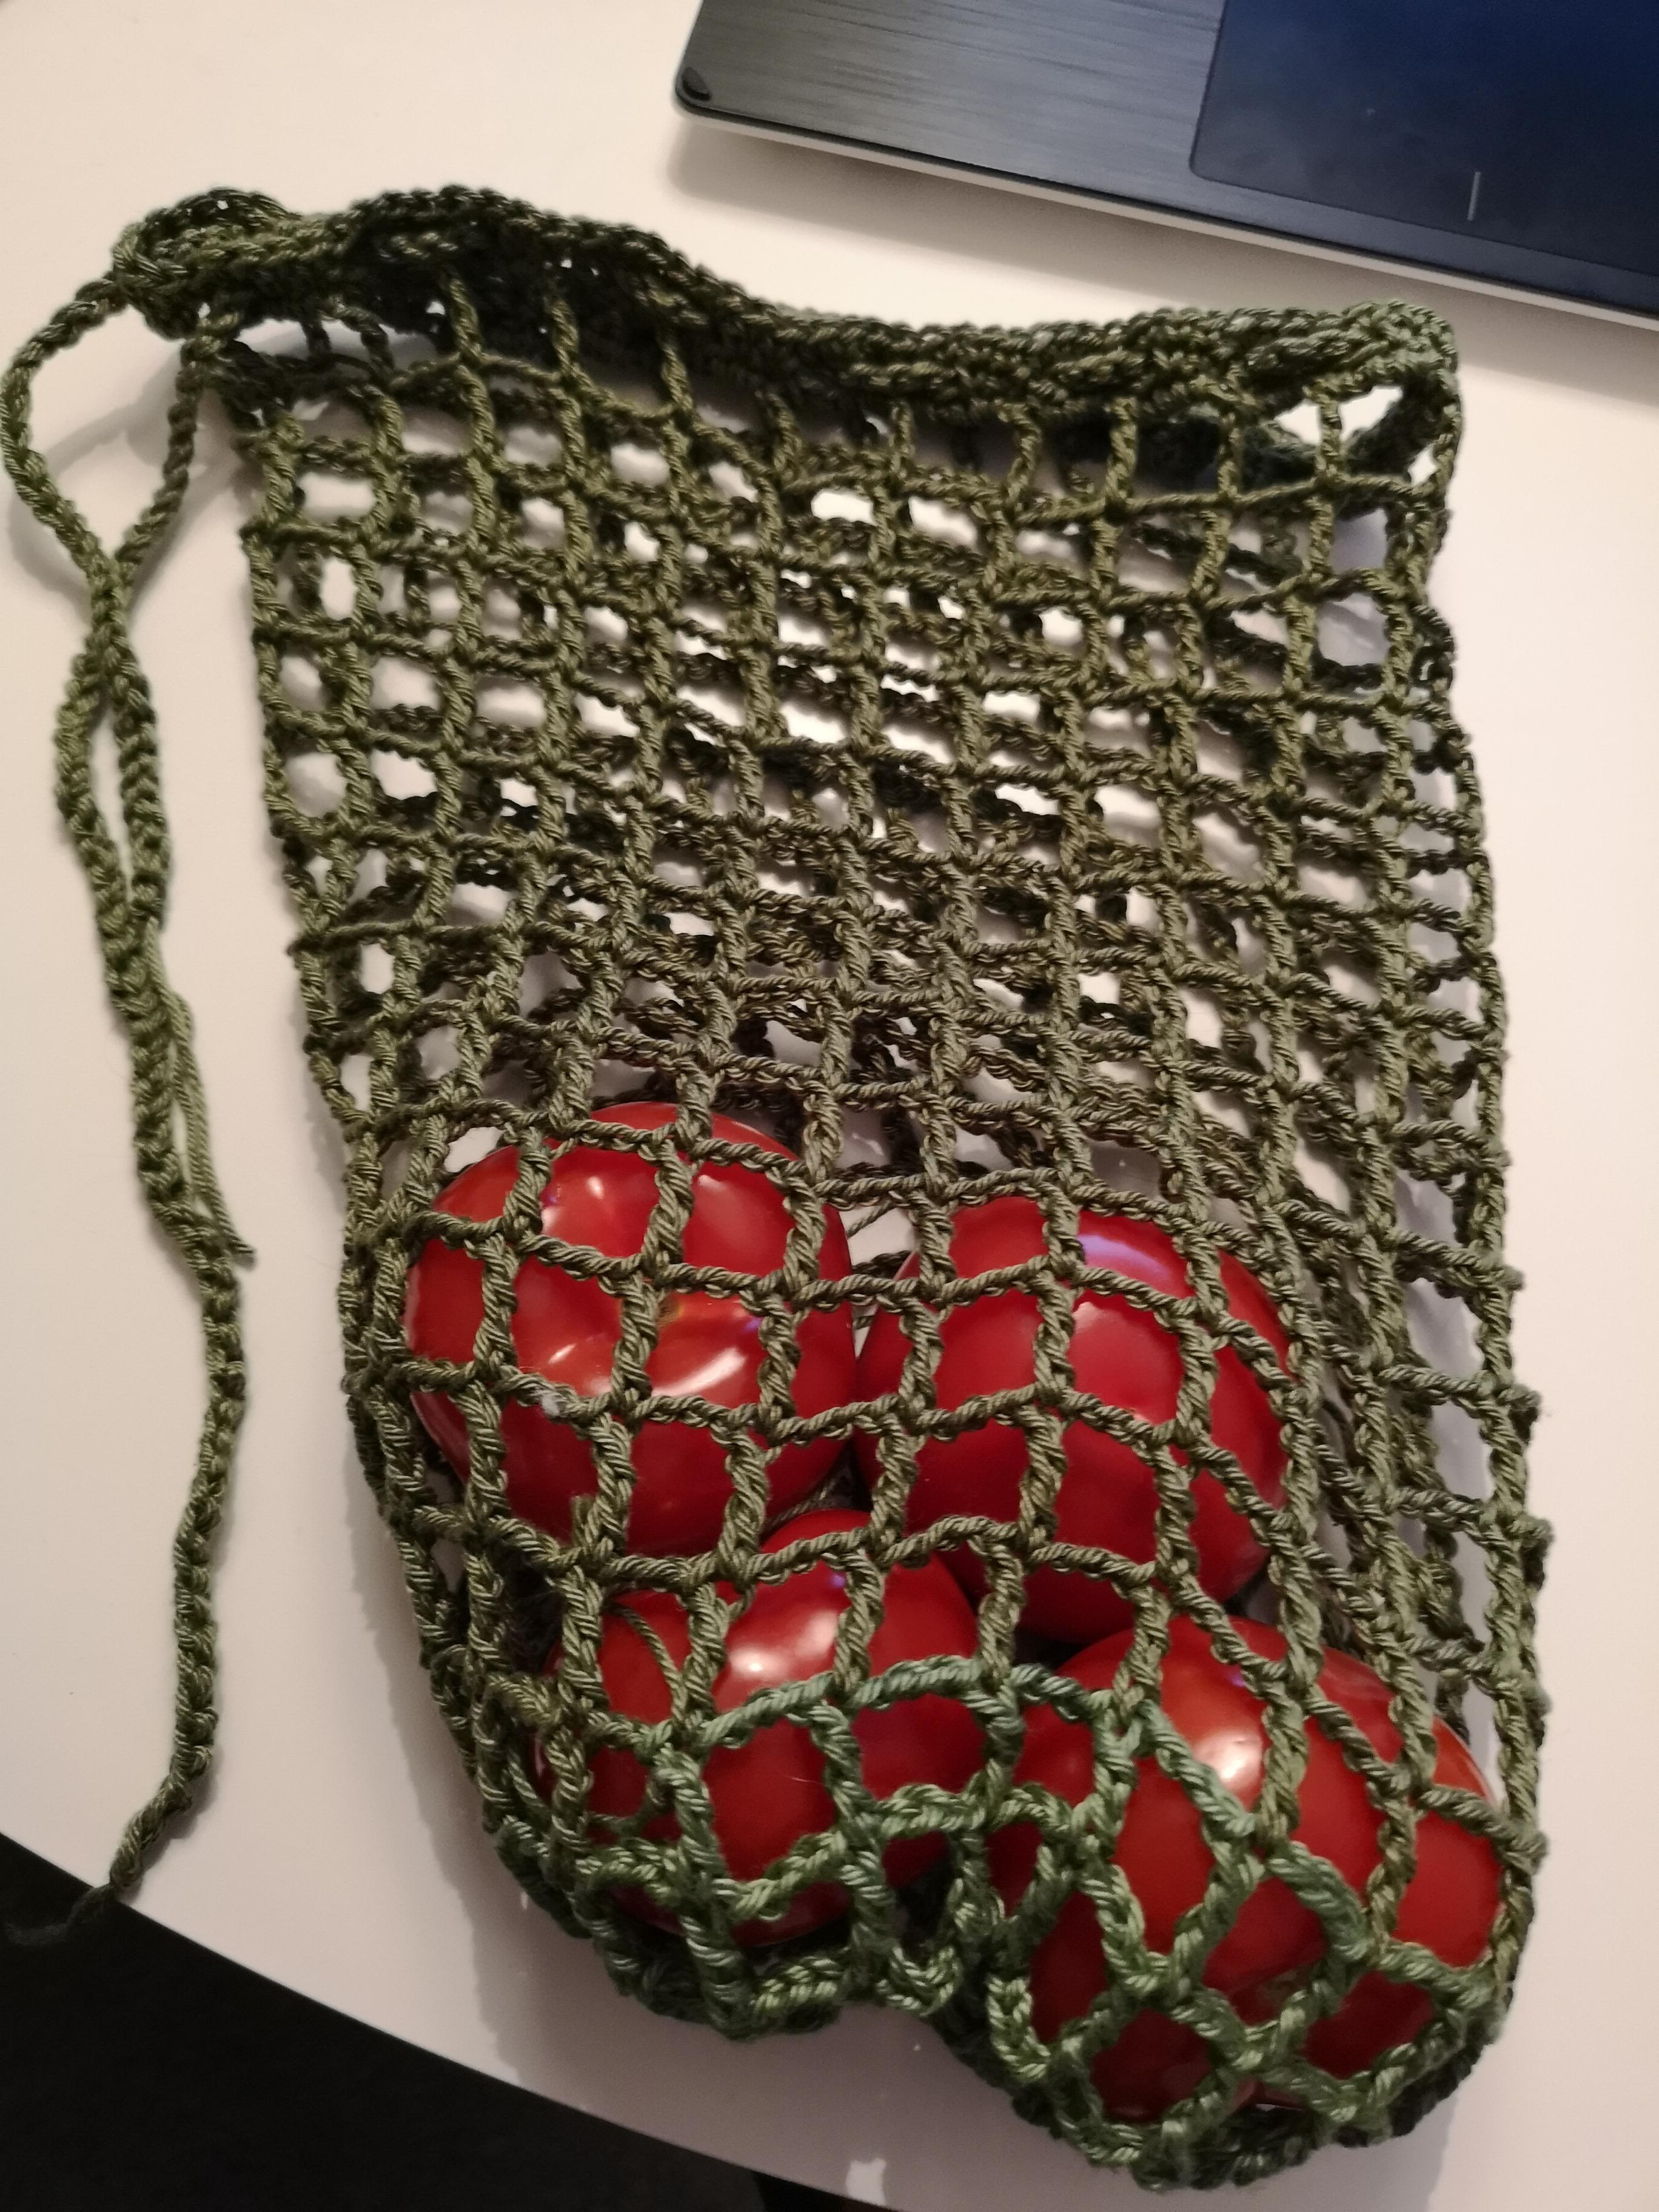 Tote Bag Patterns and Ideas that You Will Adore Used Some Leftover Yarn To Make Crochet Produce Bags Posted To